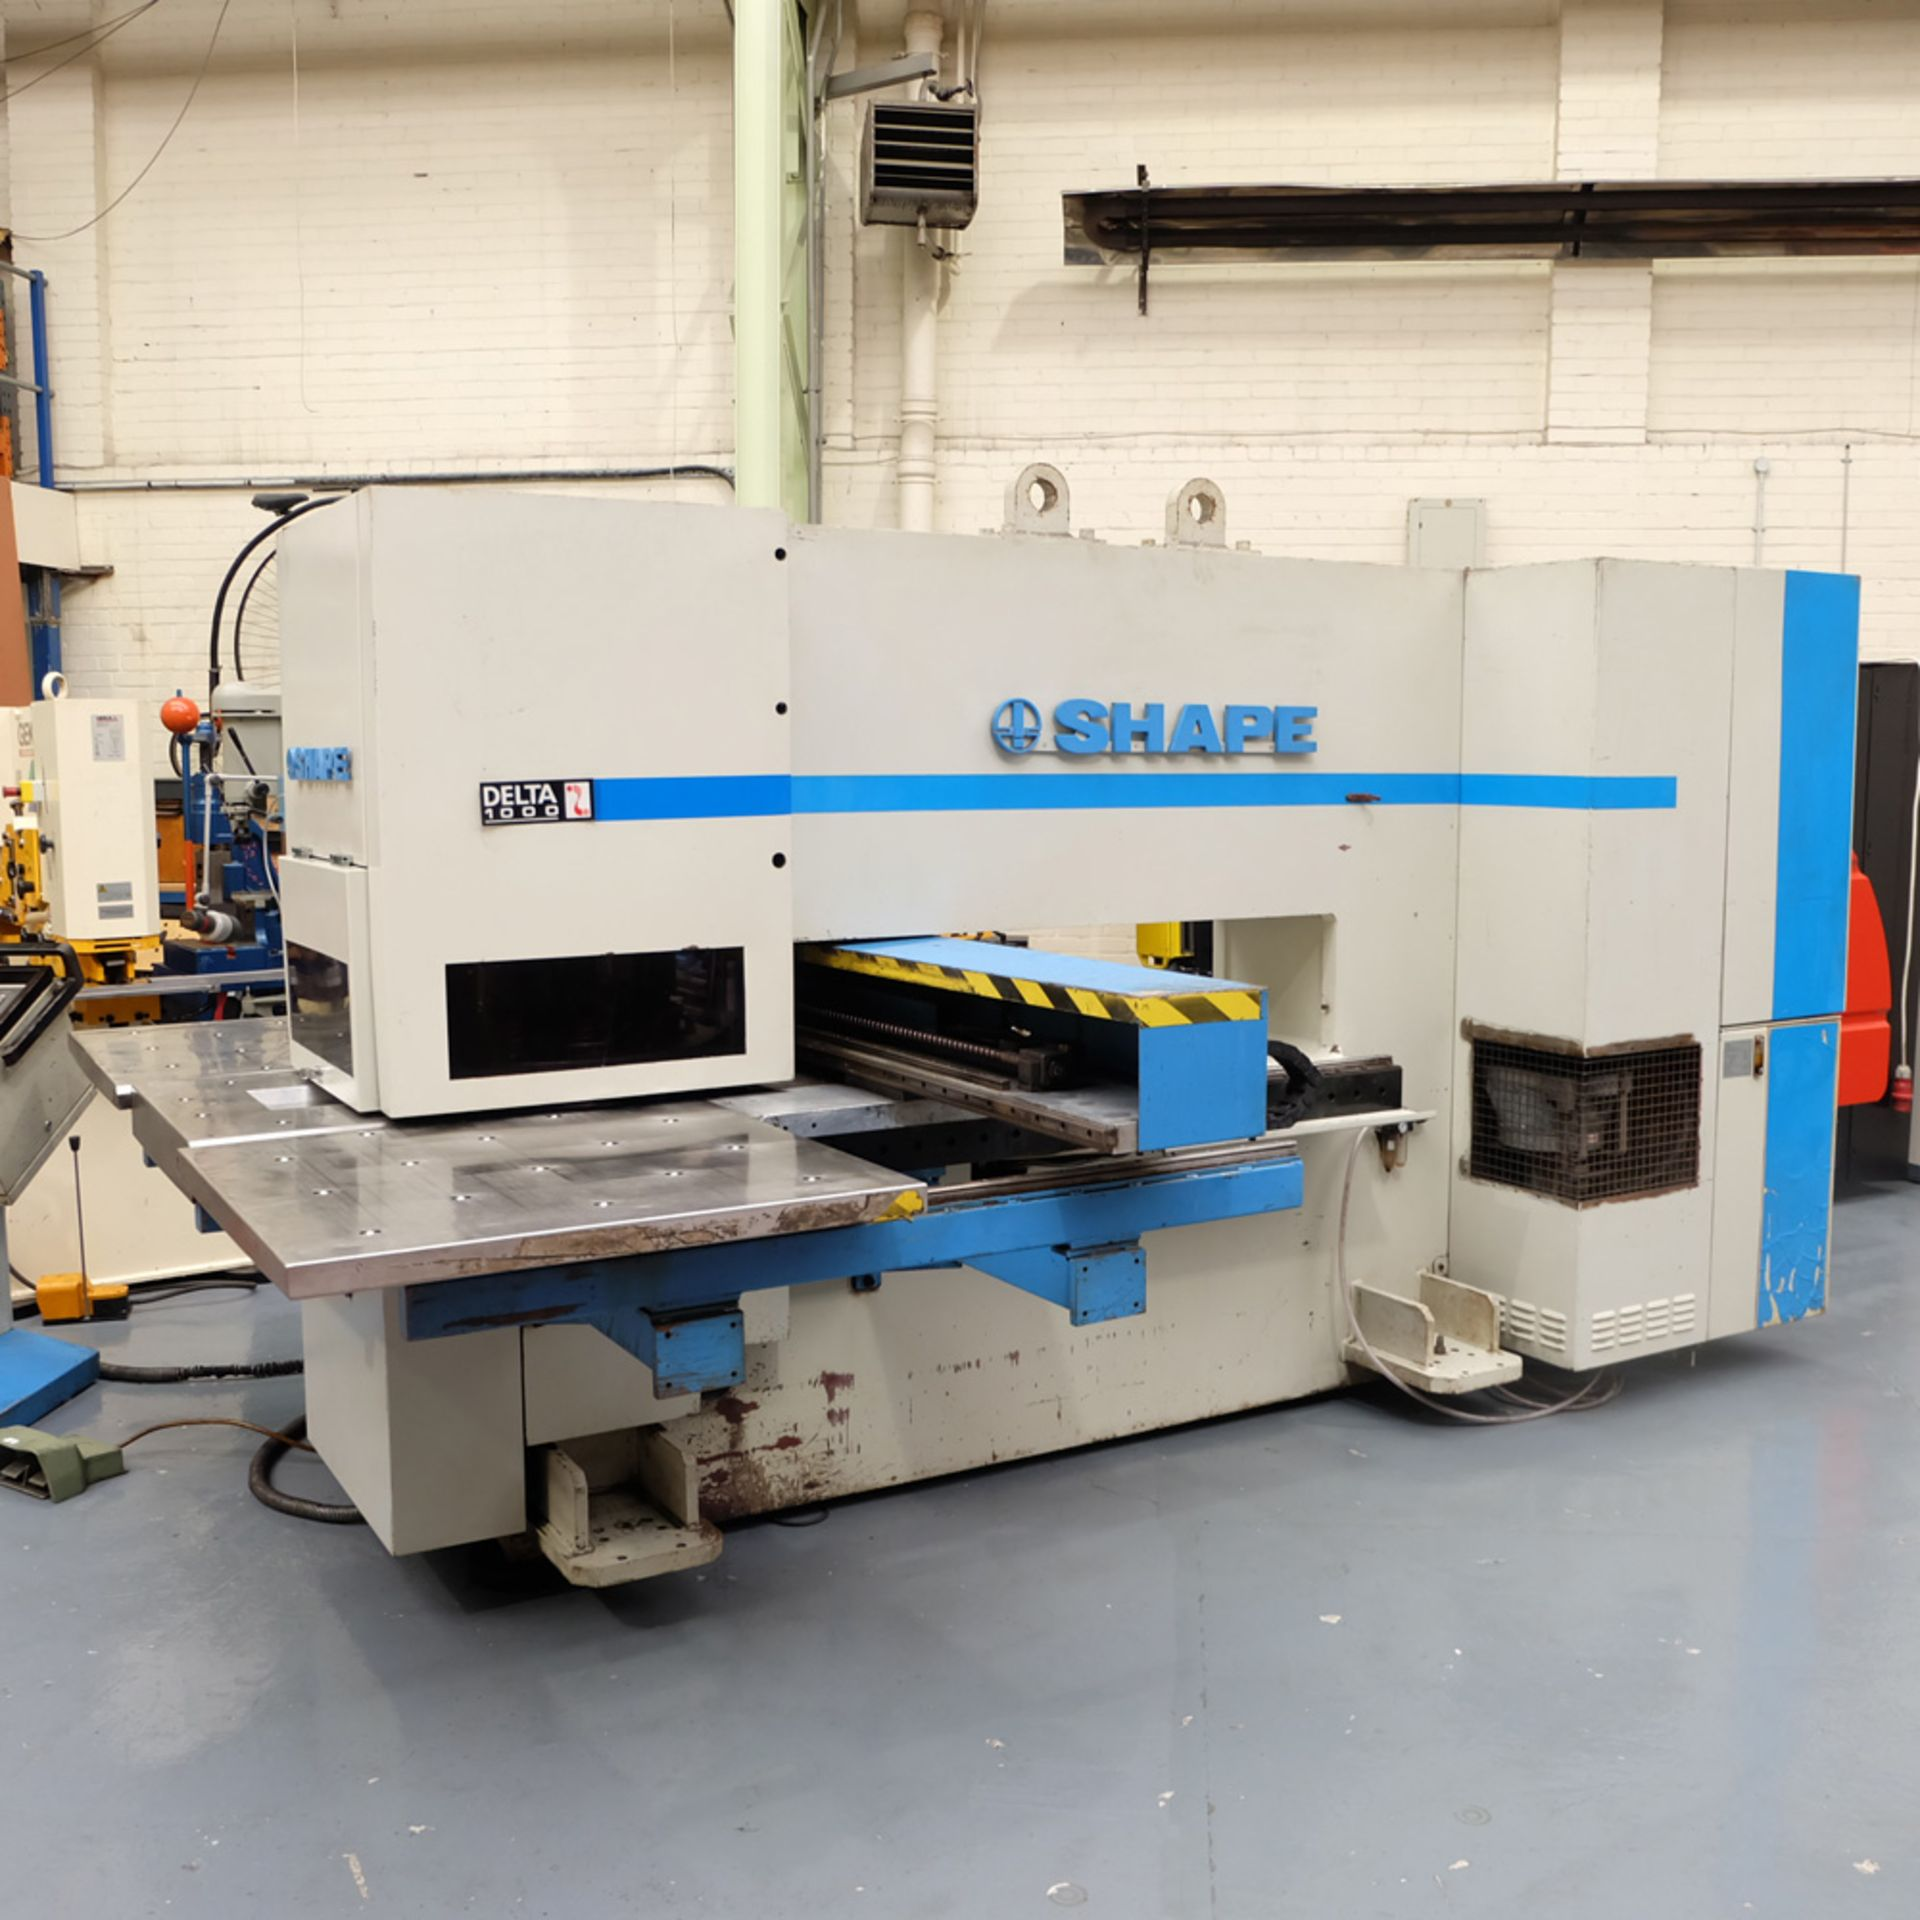 LVD SHAPE Model Delta 1000 Thick CNC Punching Machine.With Fanuc MNC 4000 Control.Capacity: 20 Tons. - Image 4 of 19